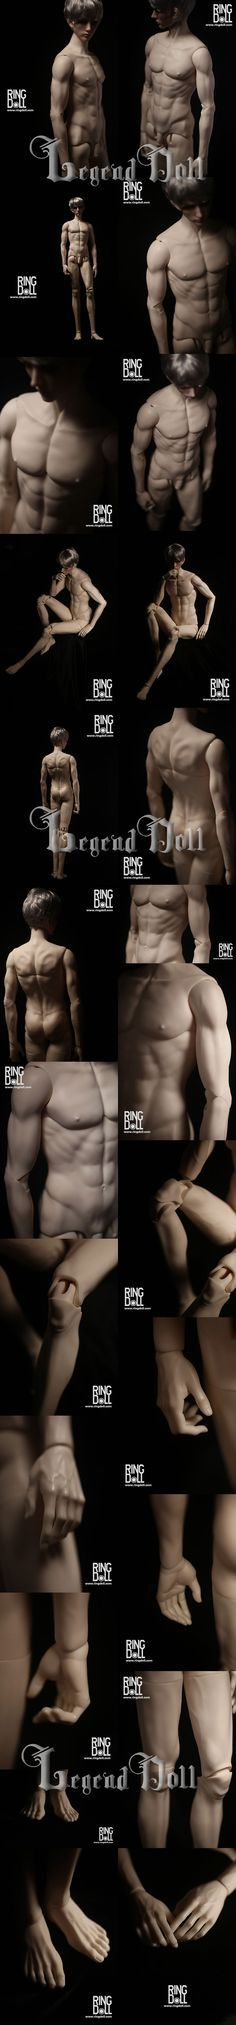 BJD 70cm Male Muscle Body RGMbody-3 Ball-jointed doll_RING DOLL_DOll body maker_DOLL BODY_Ball Jointed Dolls (BJD) company-Legenddoll